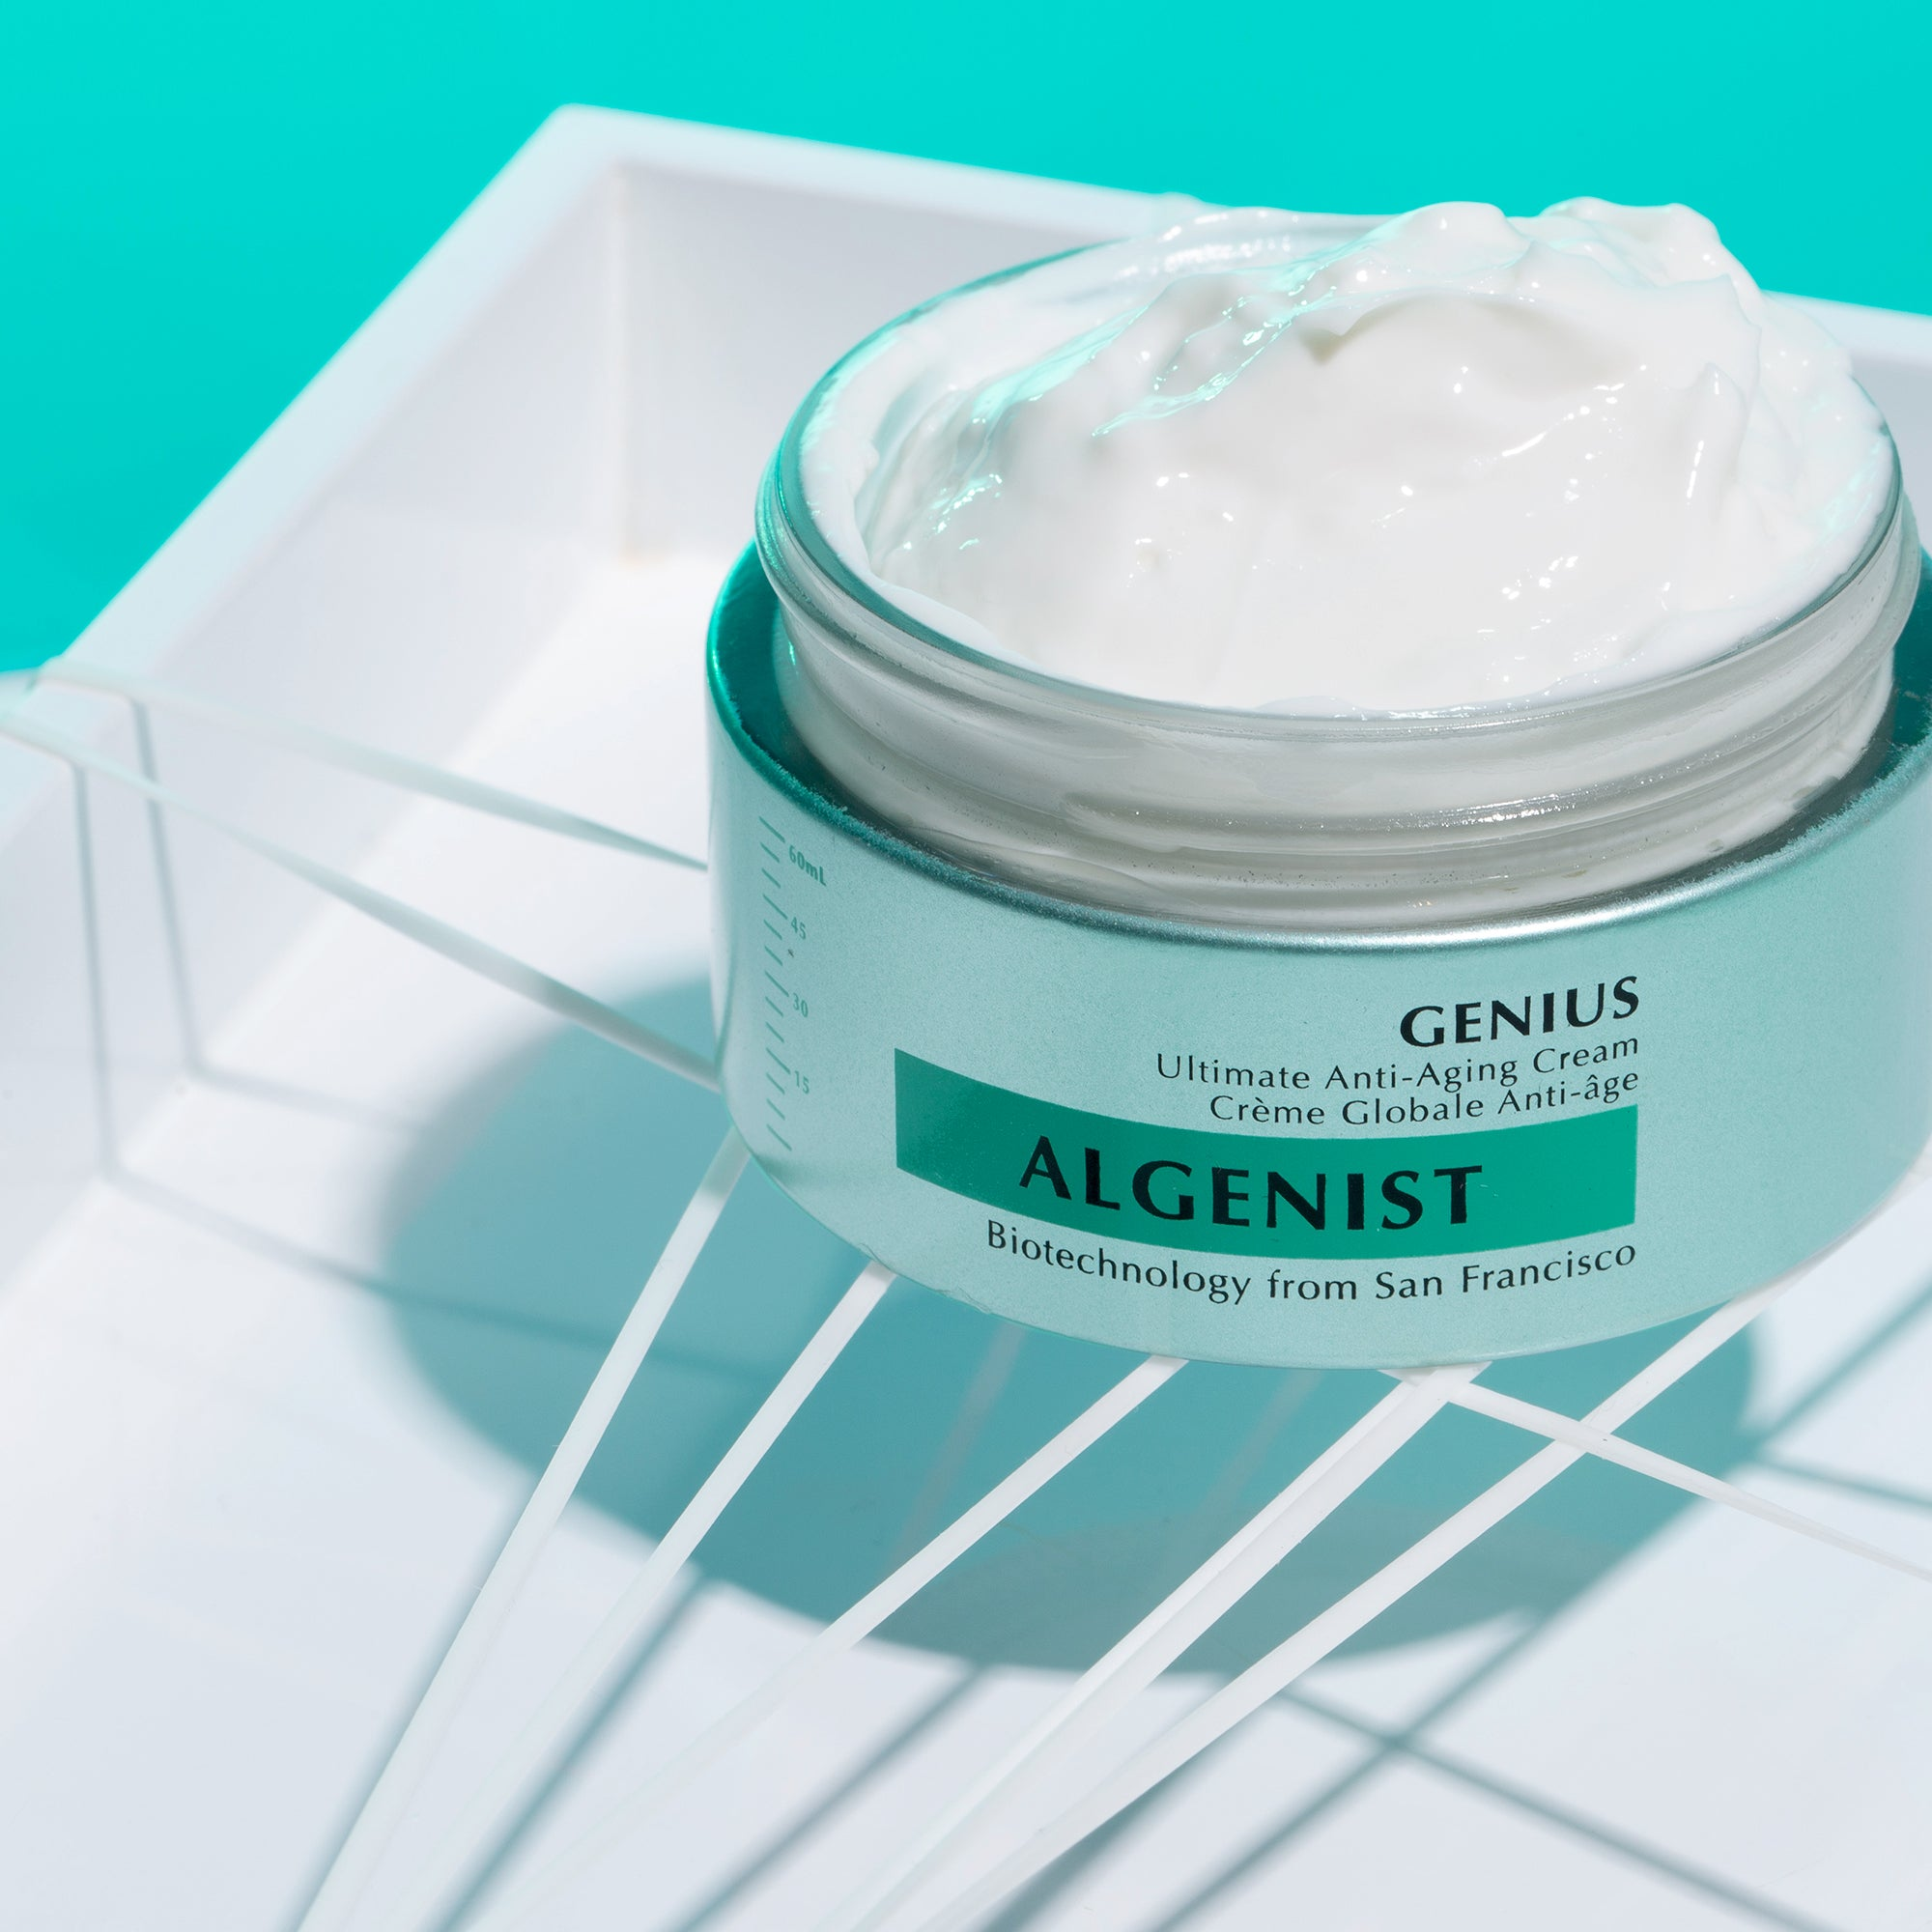 GENIUS Ultimate Anti-Aging Cream